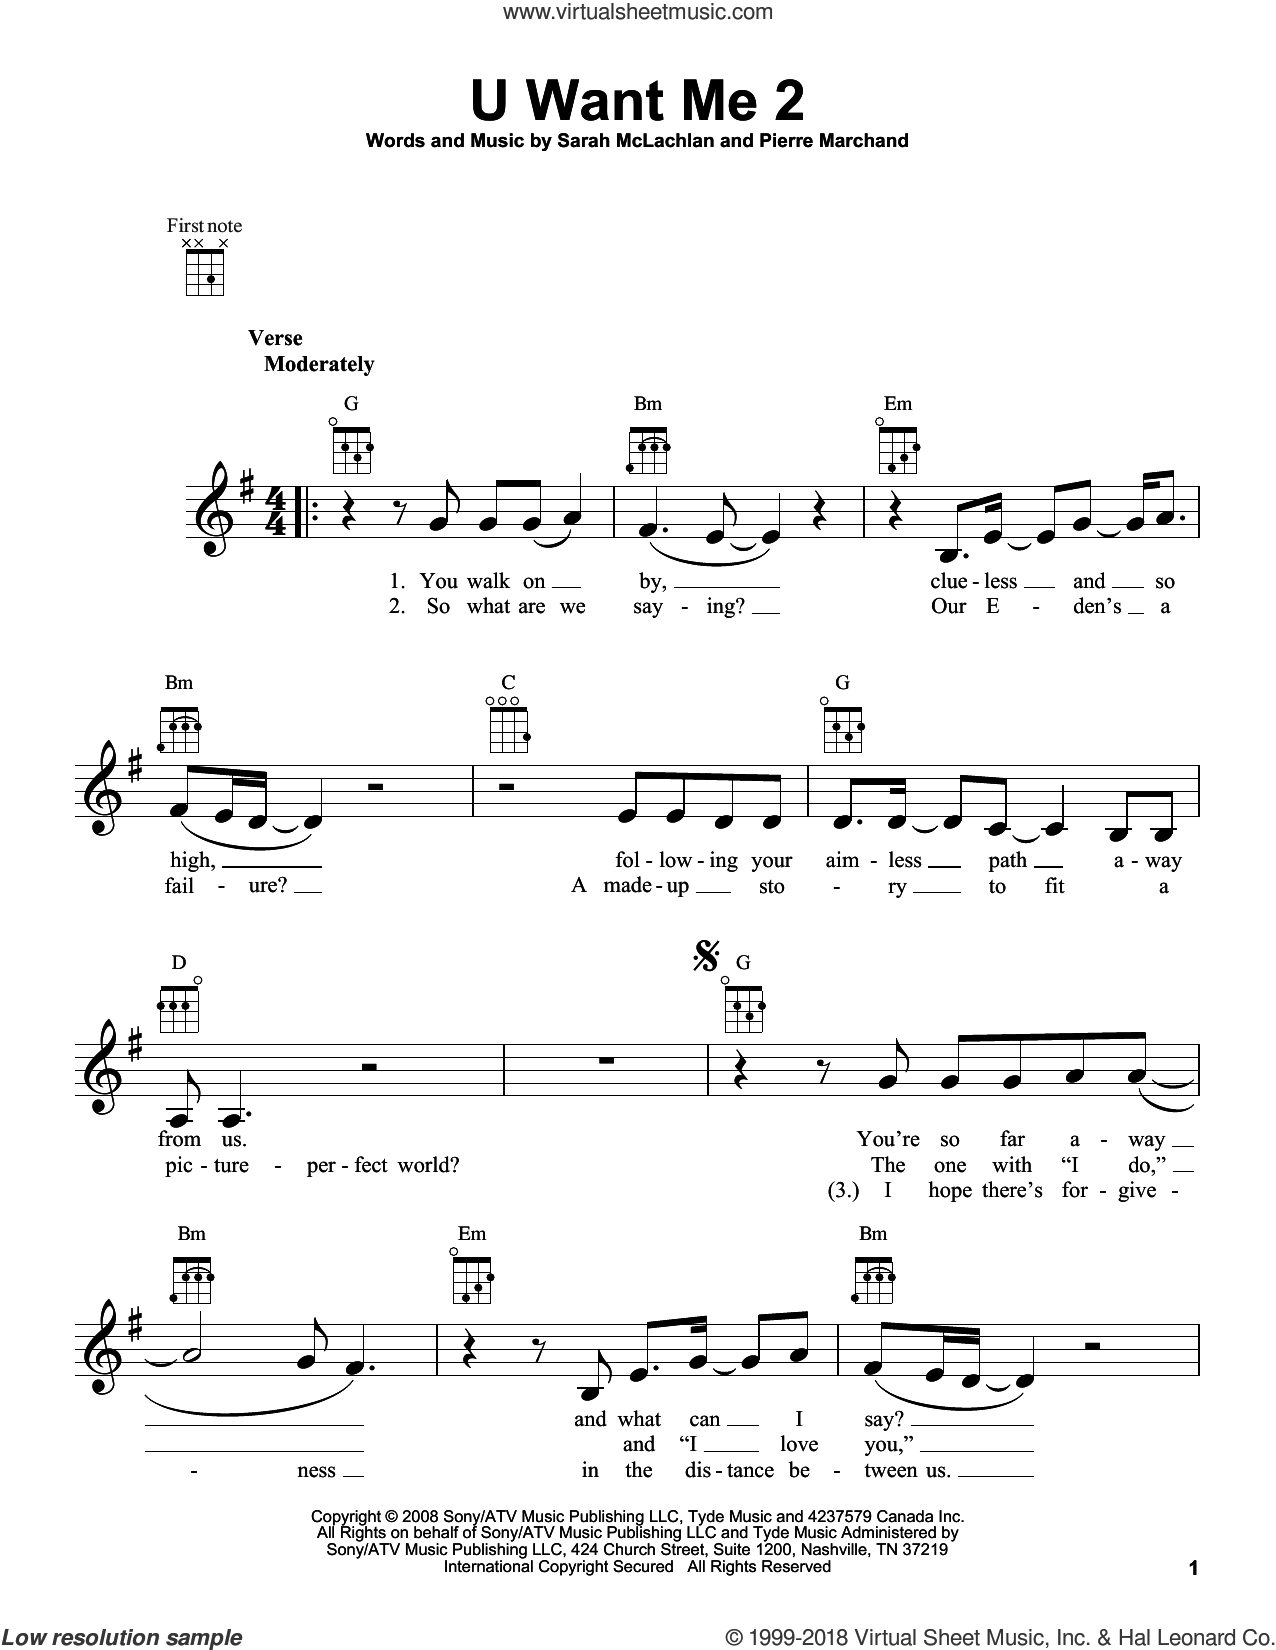 U Want Me 2 sheet music for ukulele by Sarah McLachlan and Pierre Marchand, intermediate skill level